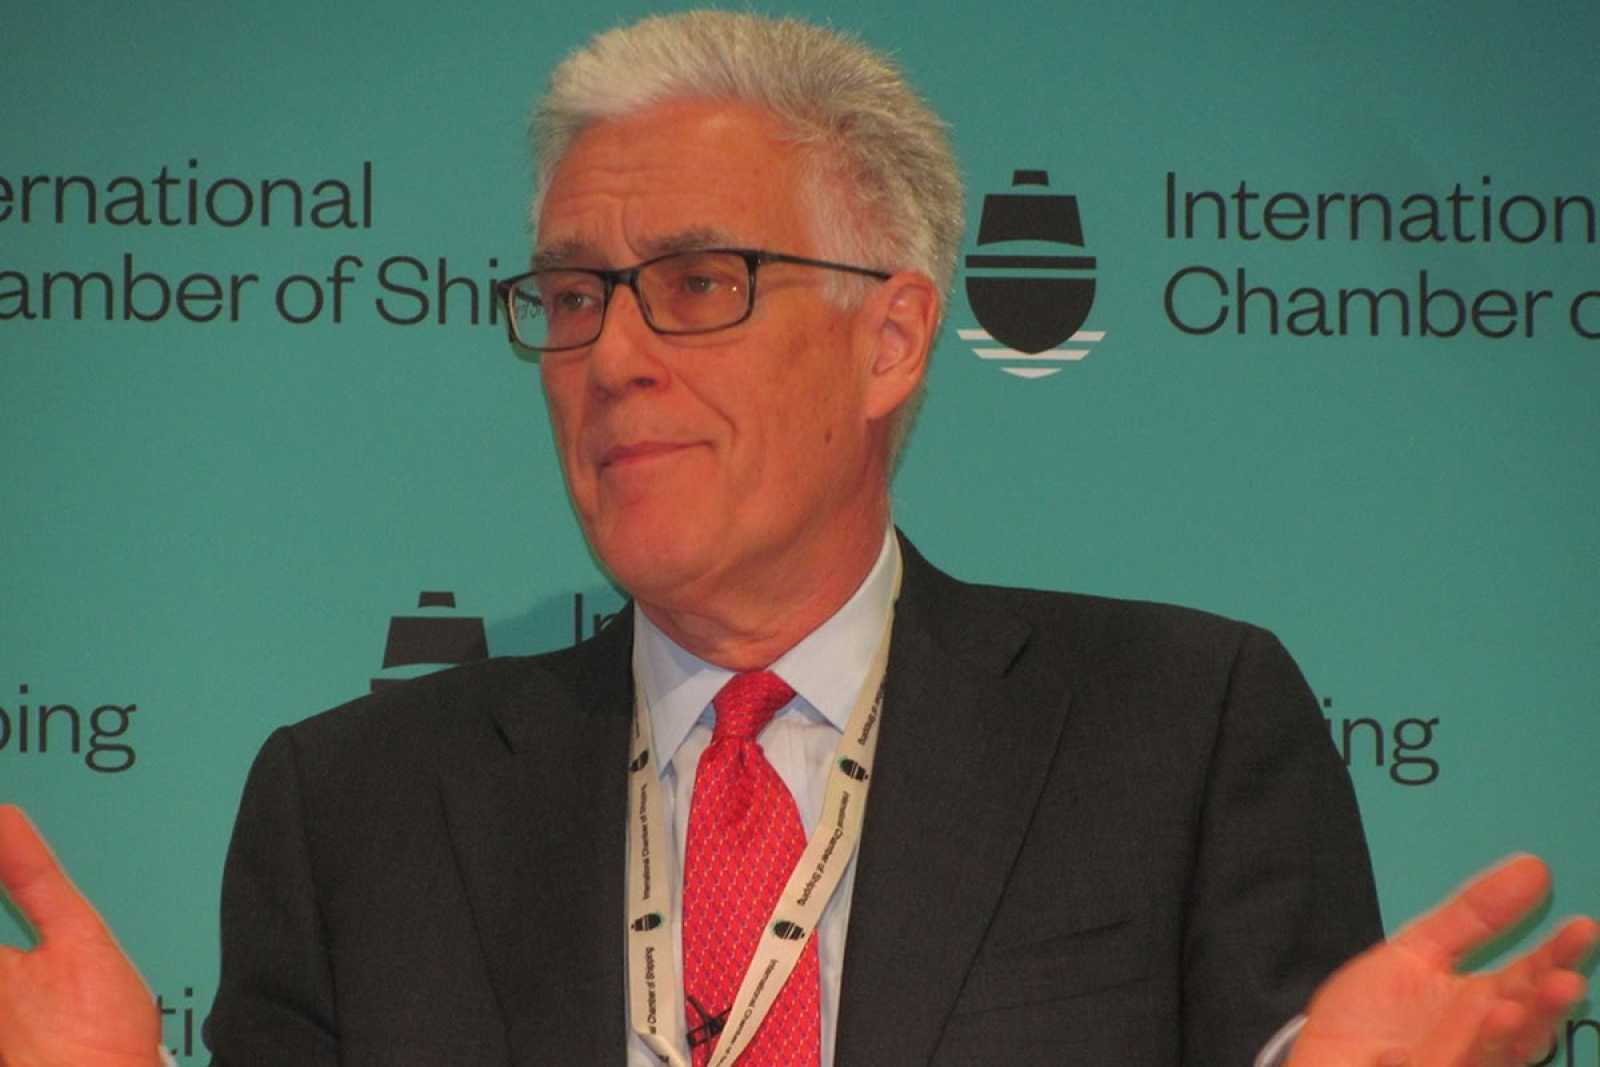 Lord Adair Turner chair UKs Energy Transitions Commission ICS Conf Sept 2019 GPG Pic